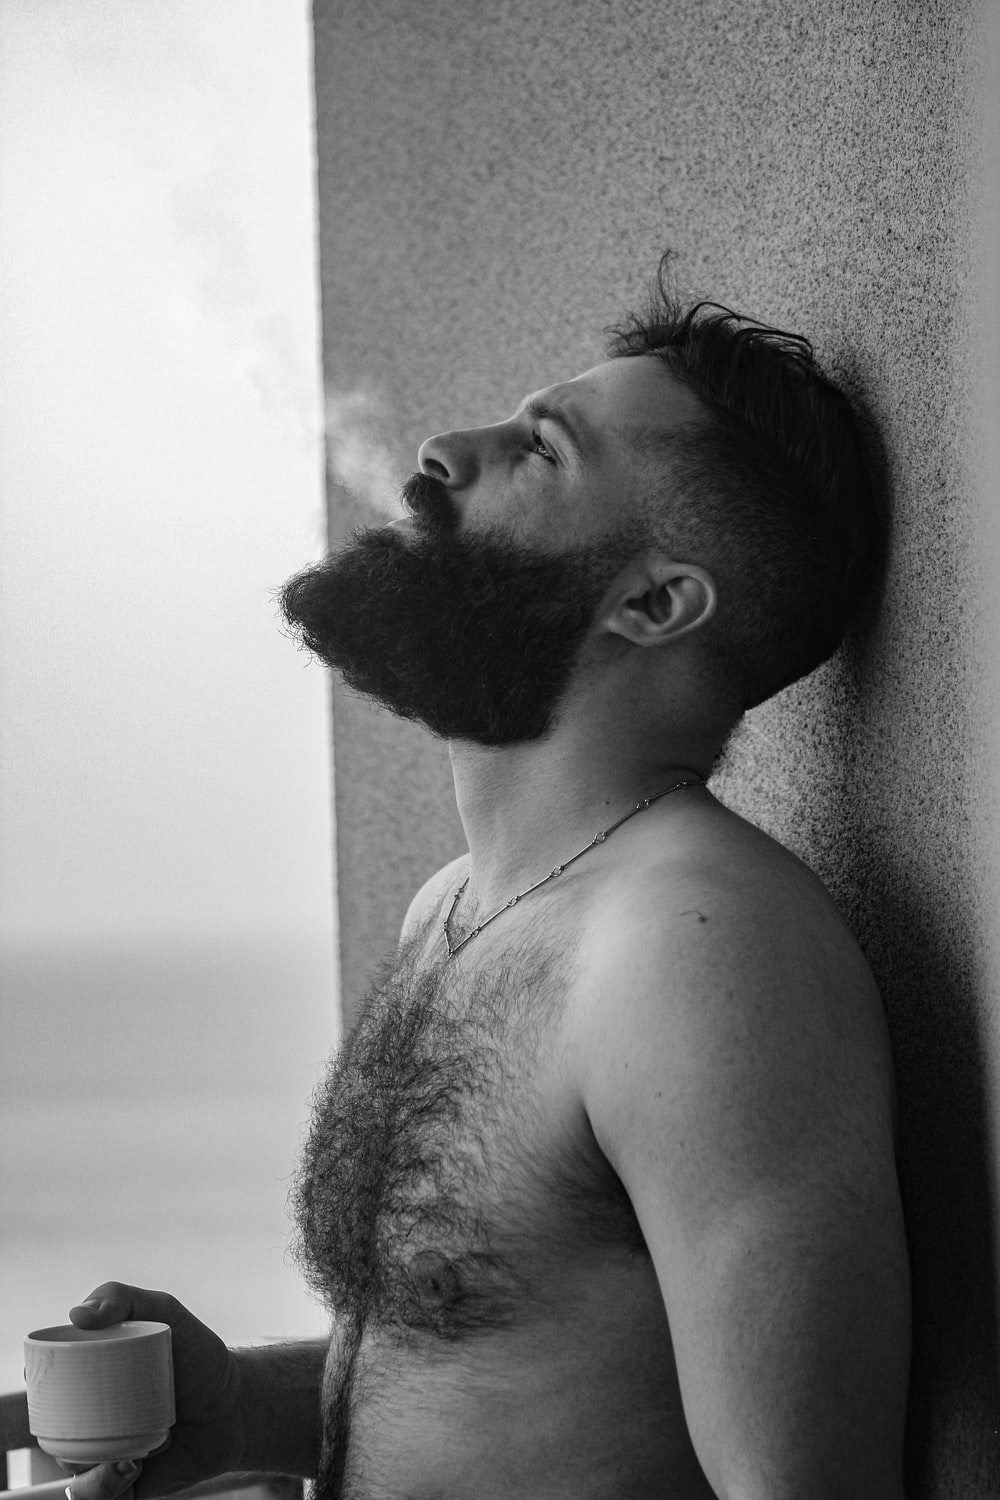 topless man leaning on wall